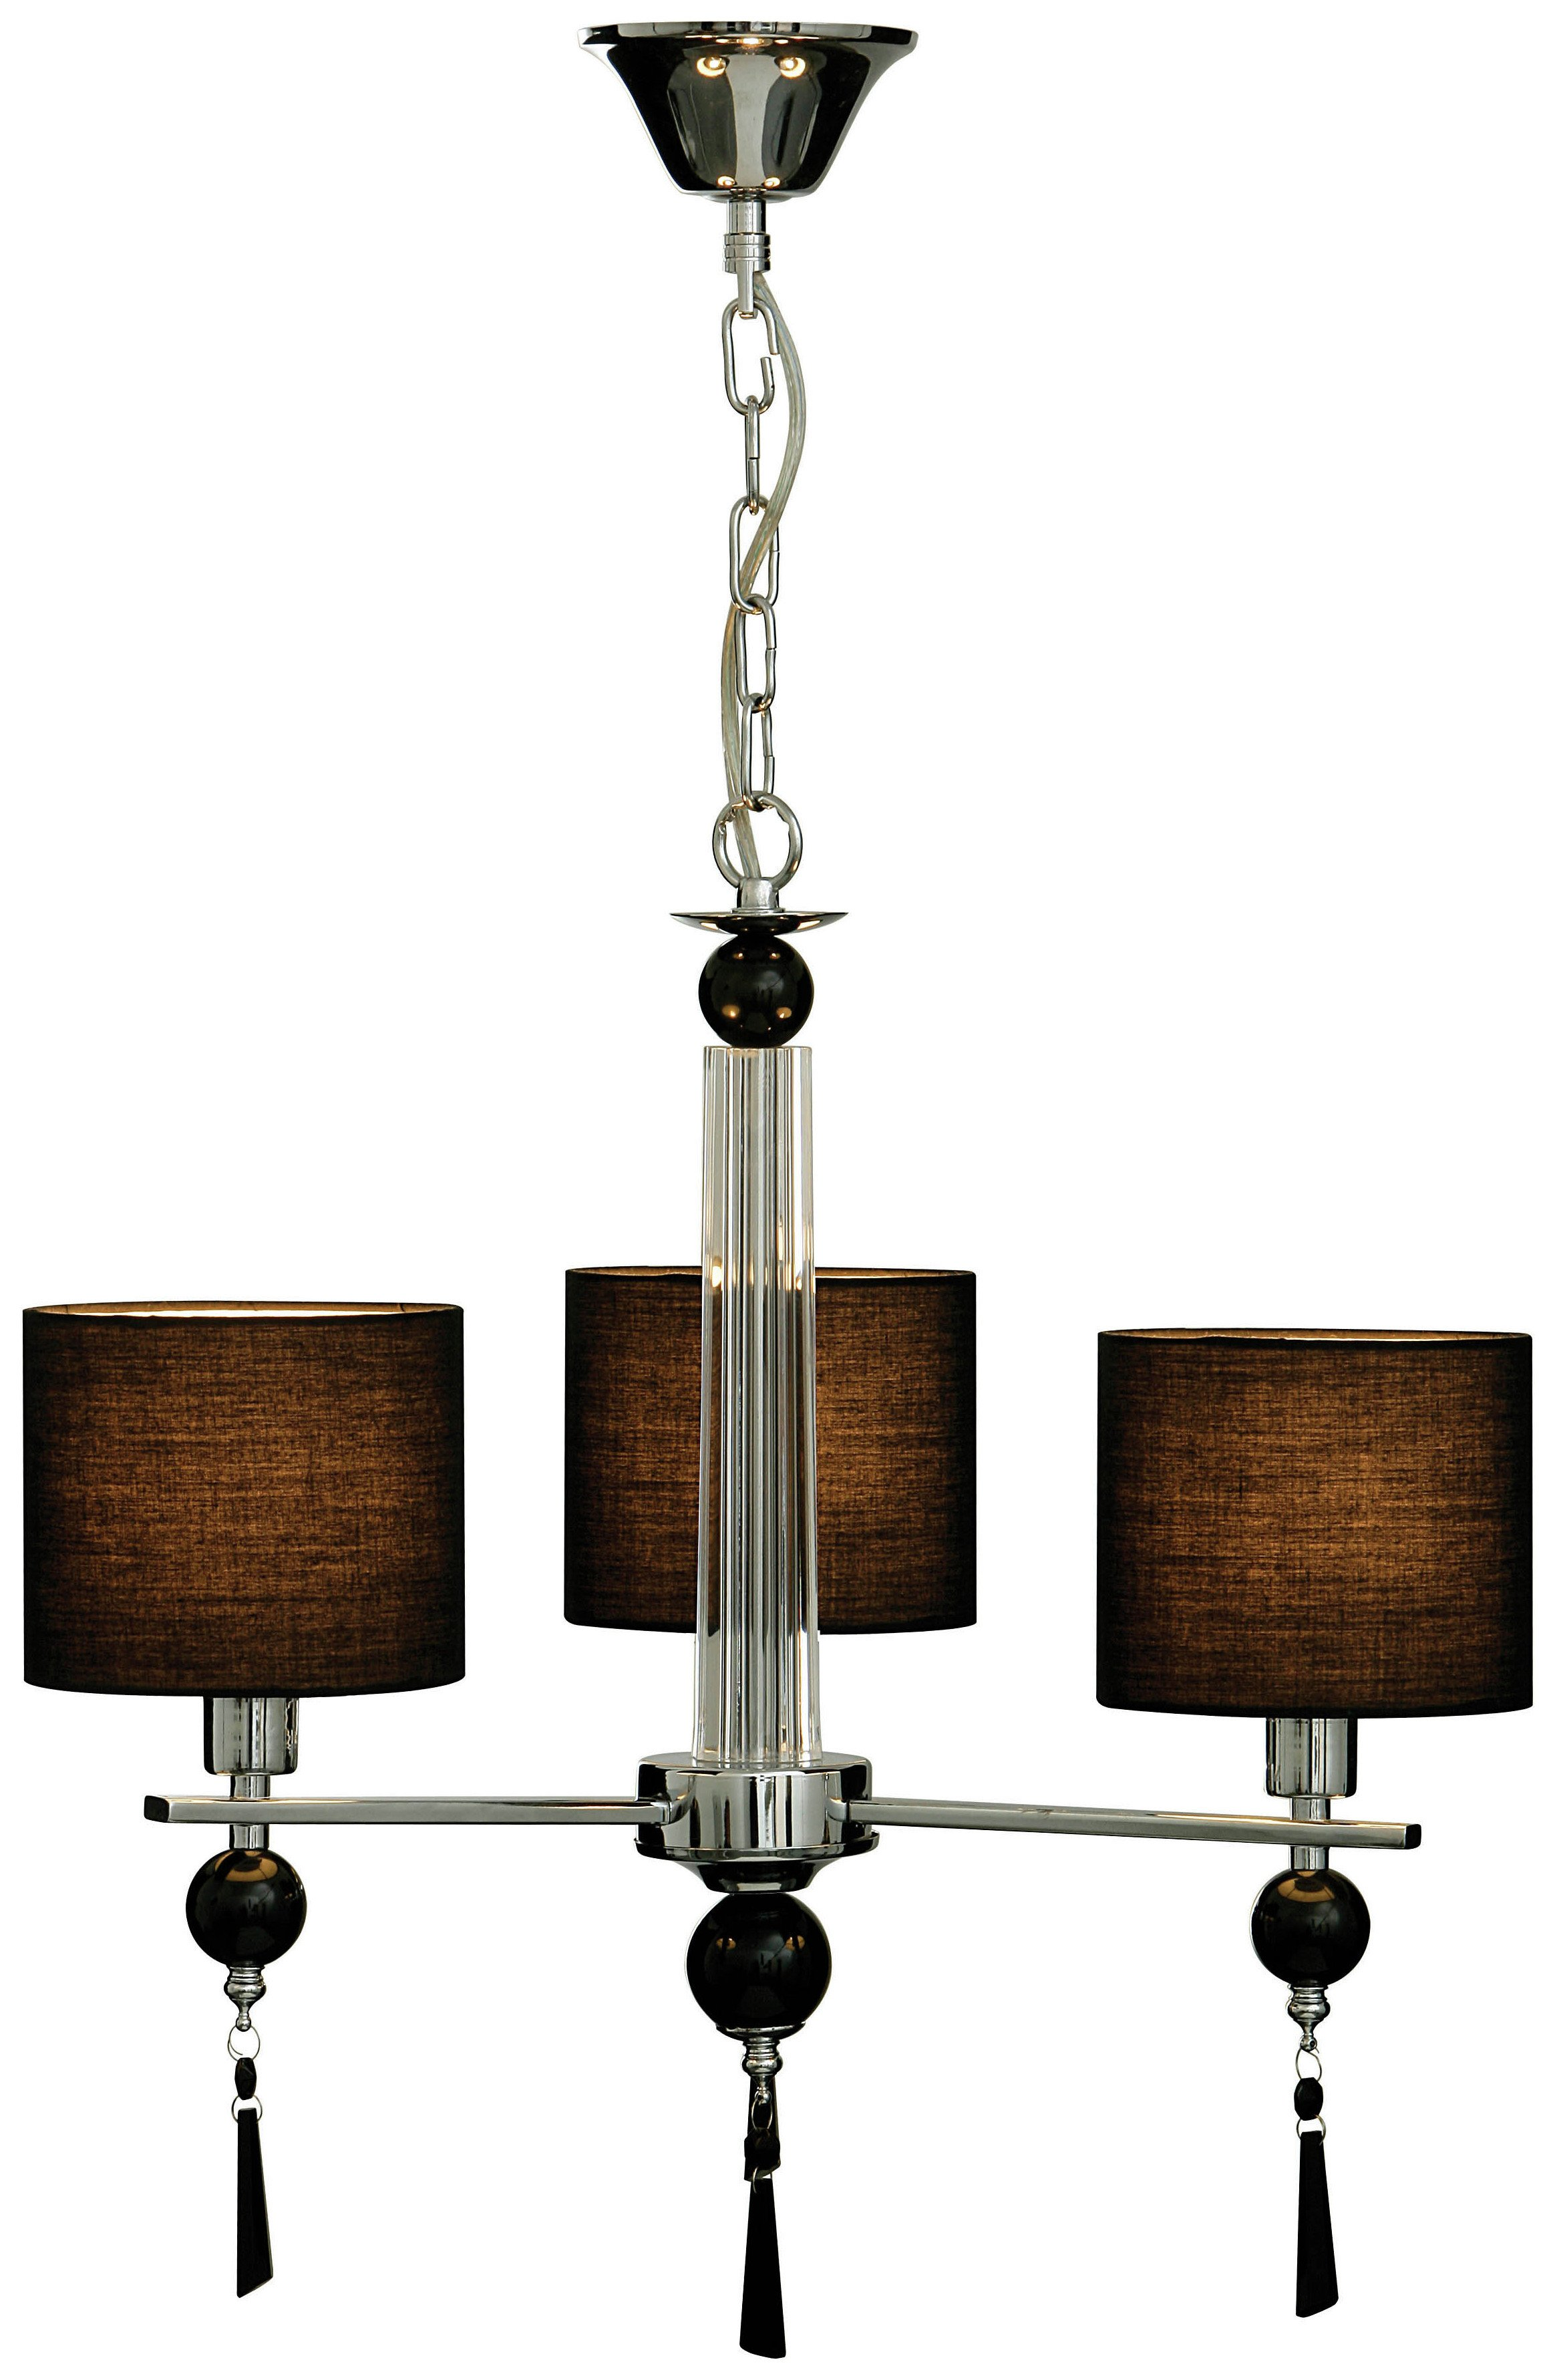 3 Arm Ceiling Light with Black Fabric Shades - Steel